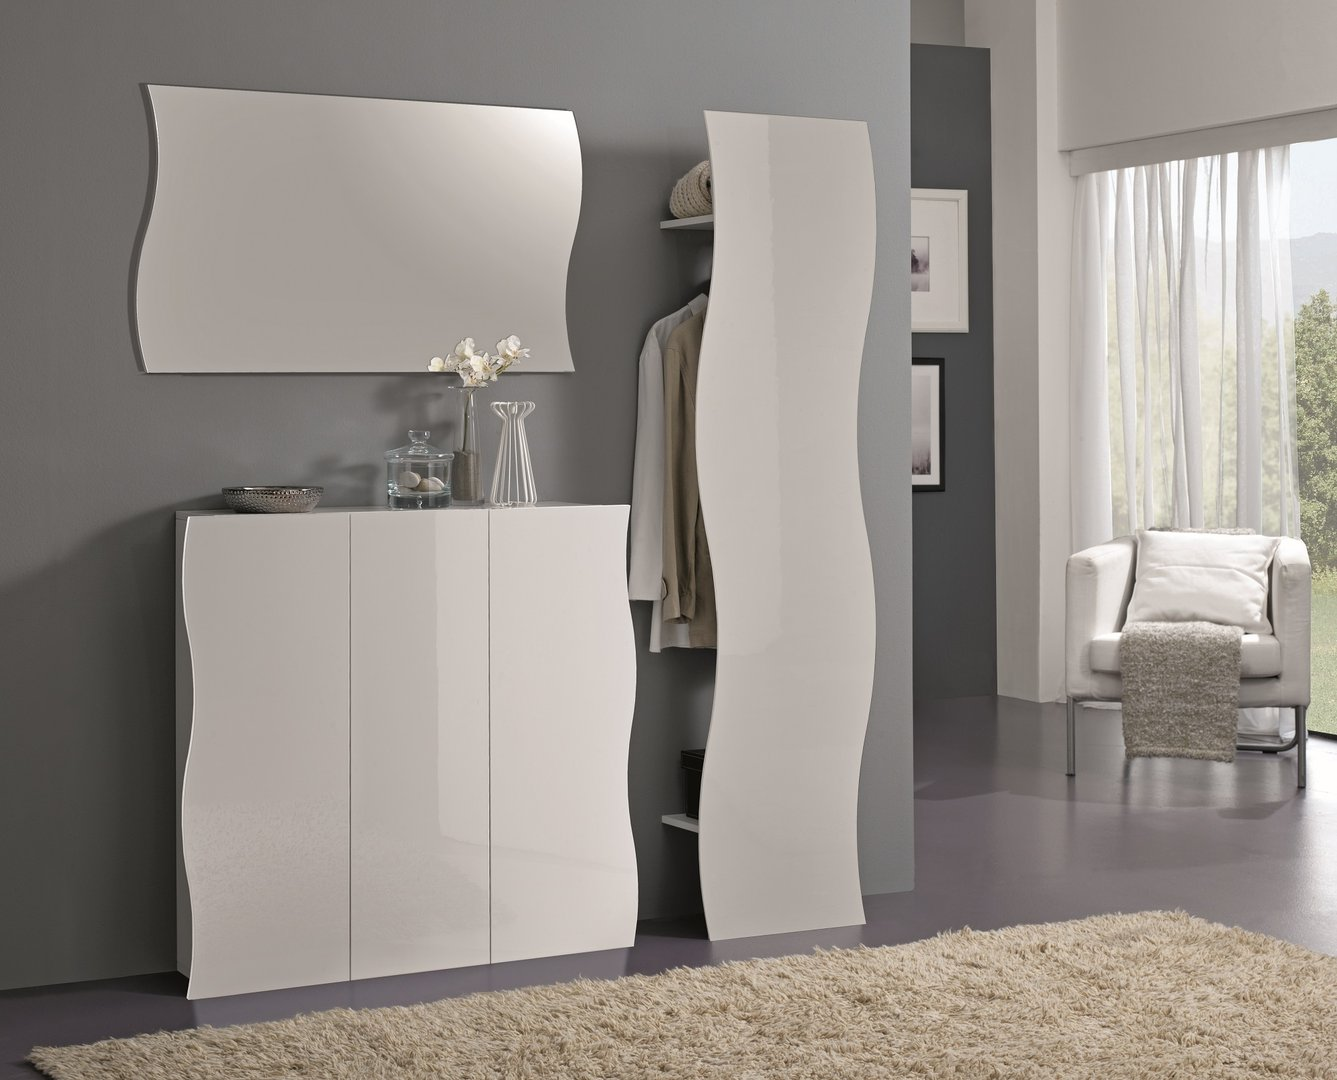 mobili per ingresso guardaroba pannelli decorativi plexiglass. Black Bedroom Furniture Sets. Home Design Ideas